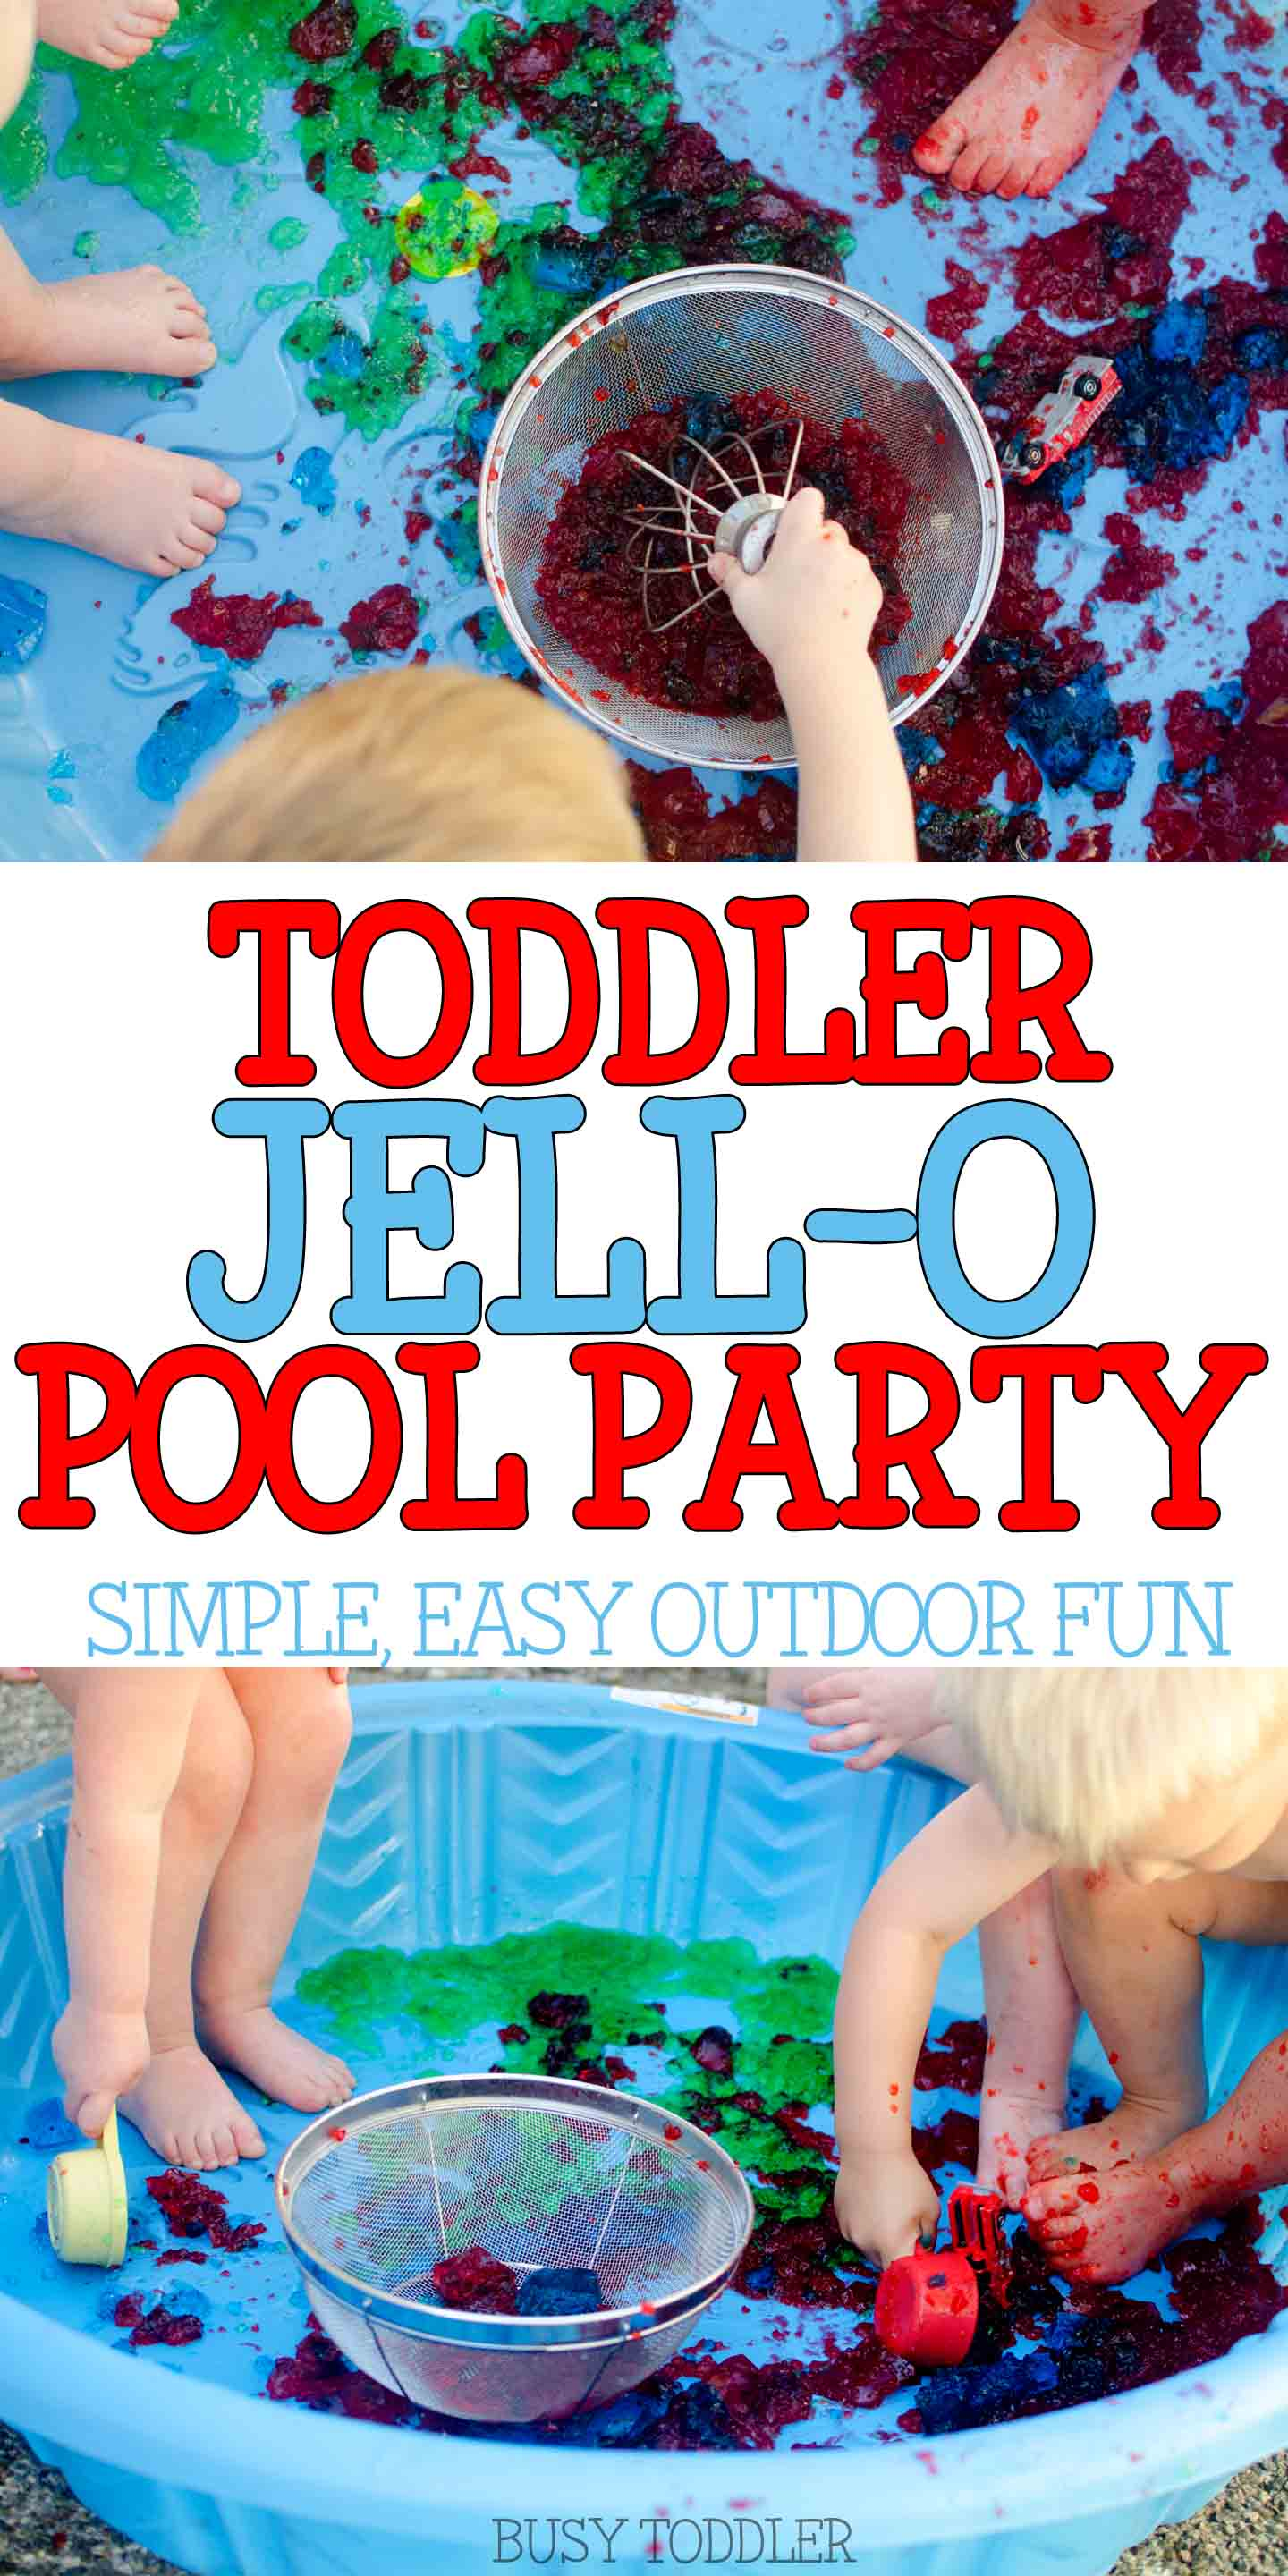 JELL-O POOL PARTY: Host a hilarious toddler activity this summer - make a Jell-o Pool! An easy outdoor activity; fun summer activity